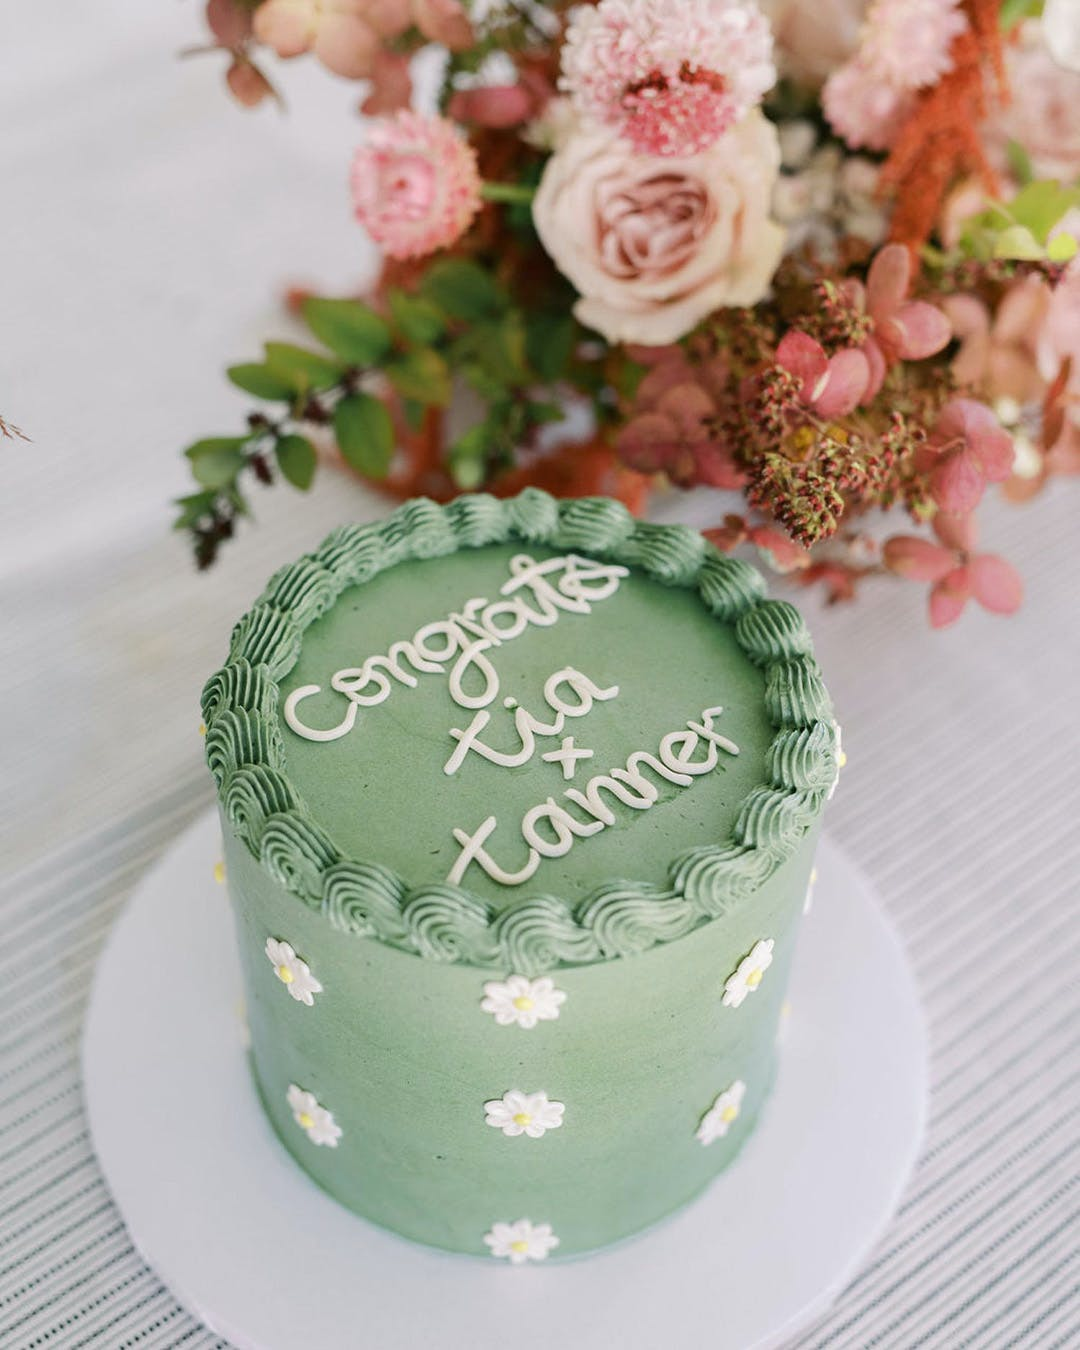 Green engagement party cake with white clouds down side | PartySlate